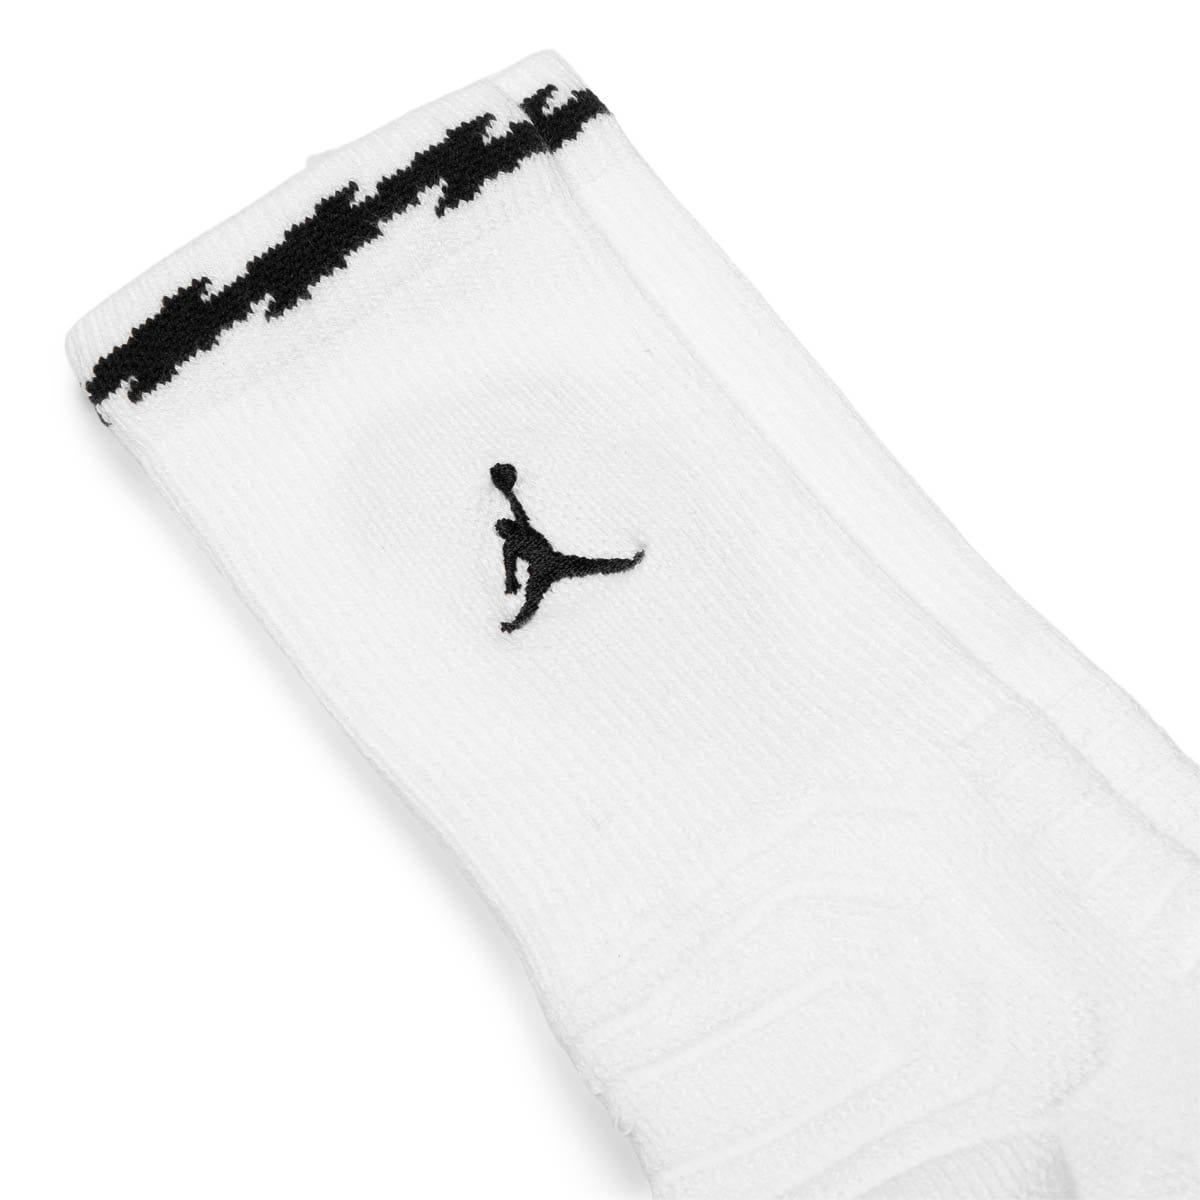 Air Jordan Bags & Accessories ZION FLIGHT SOCKS